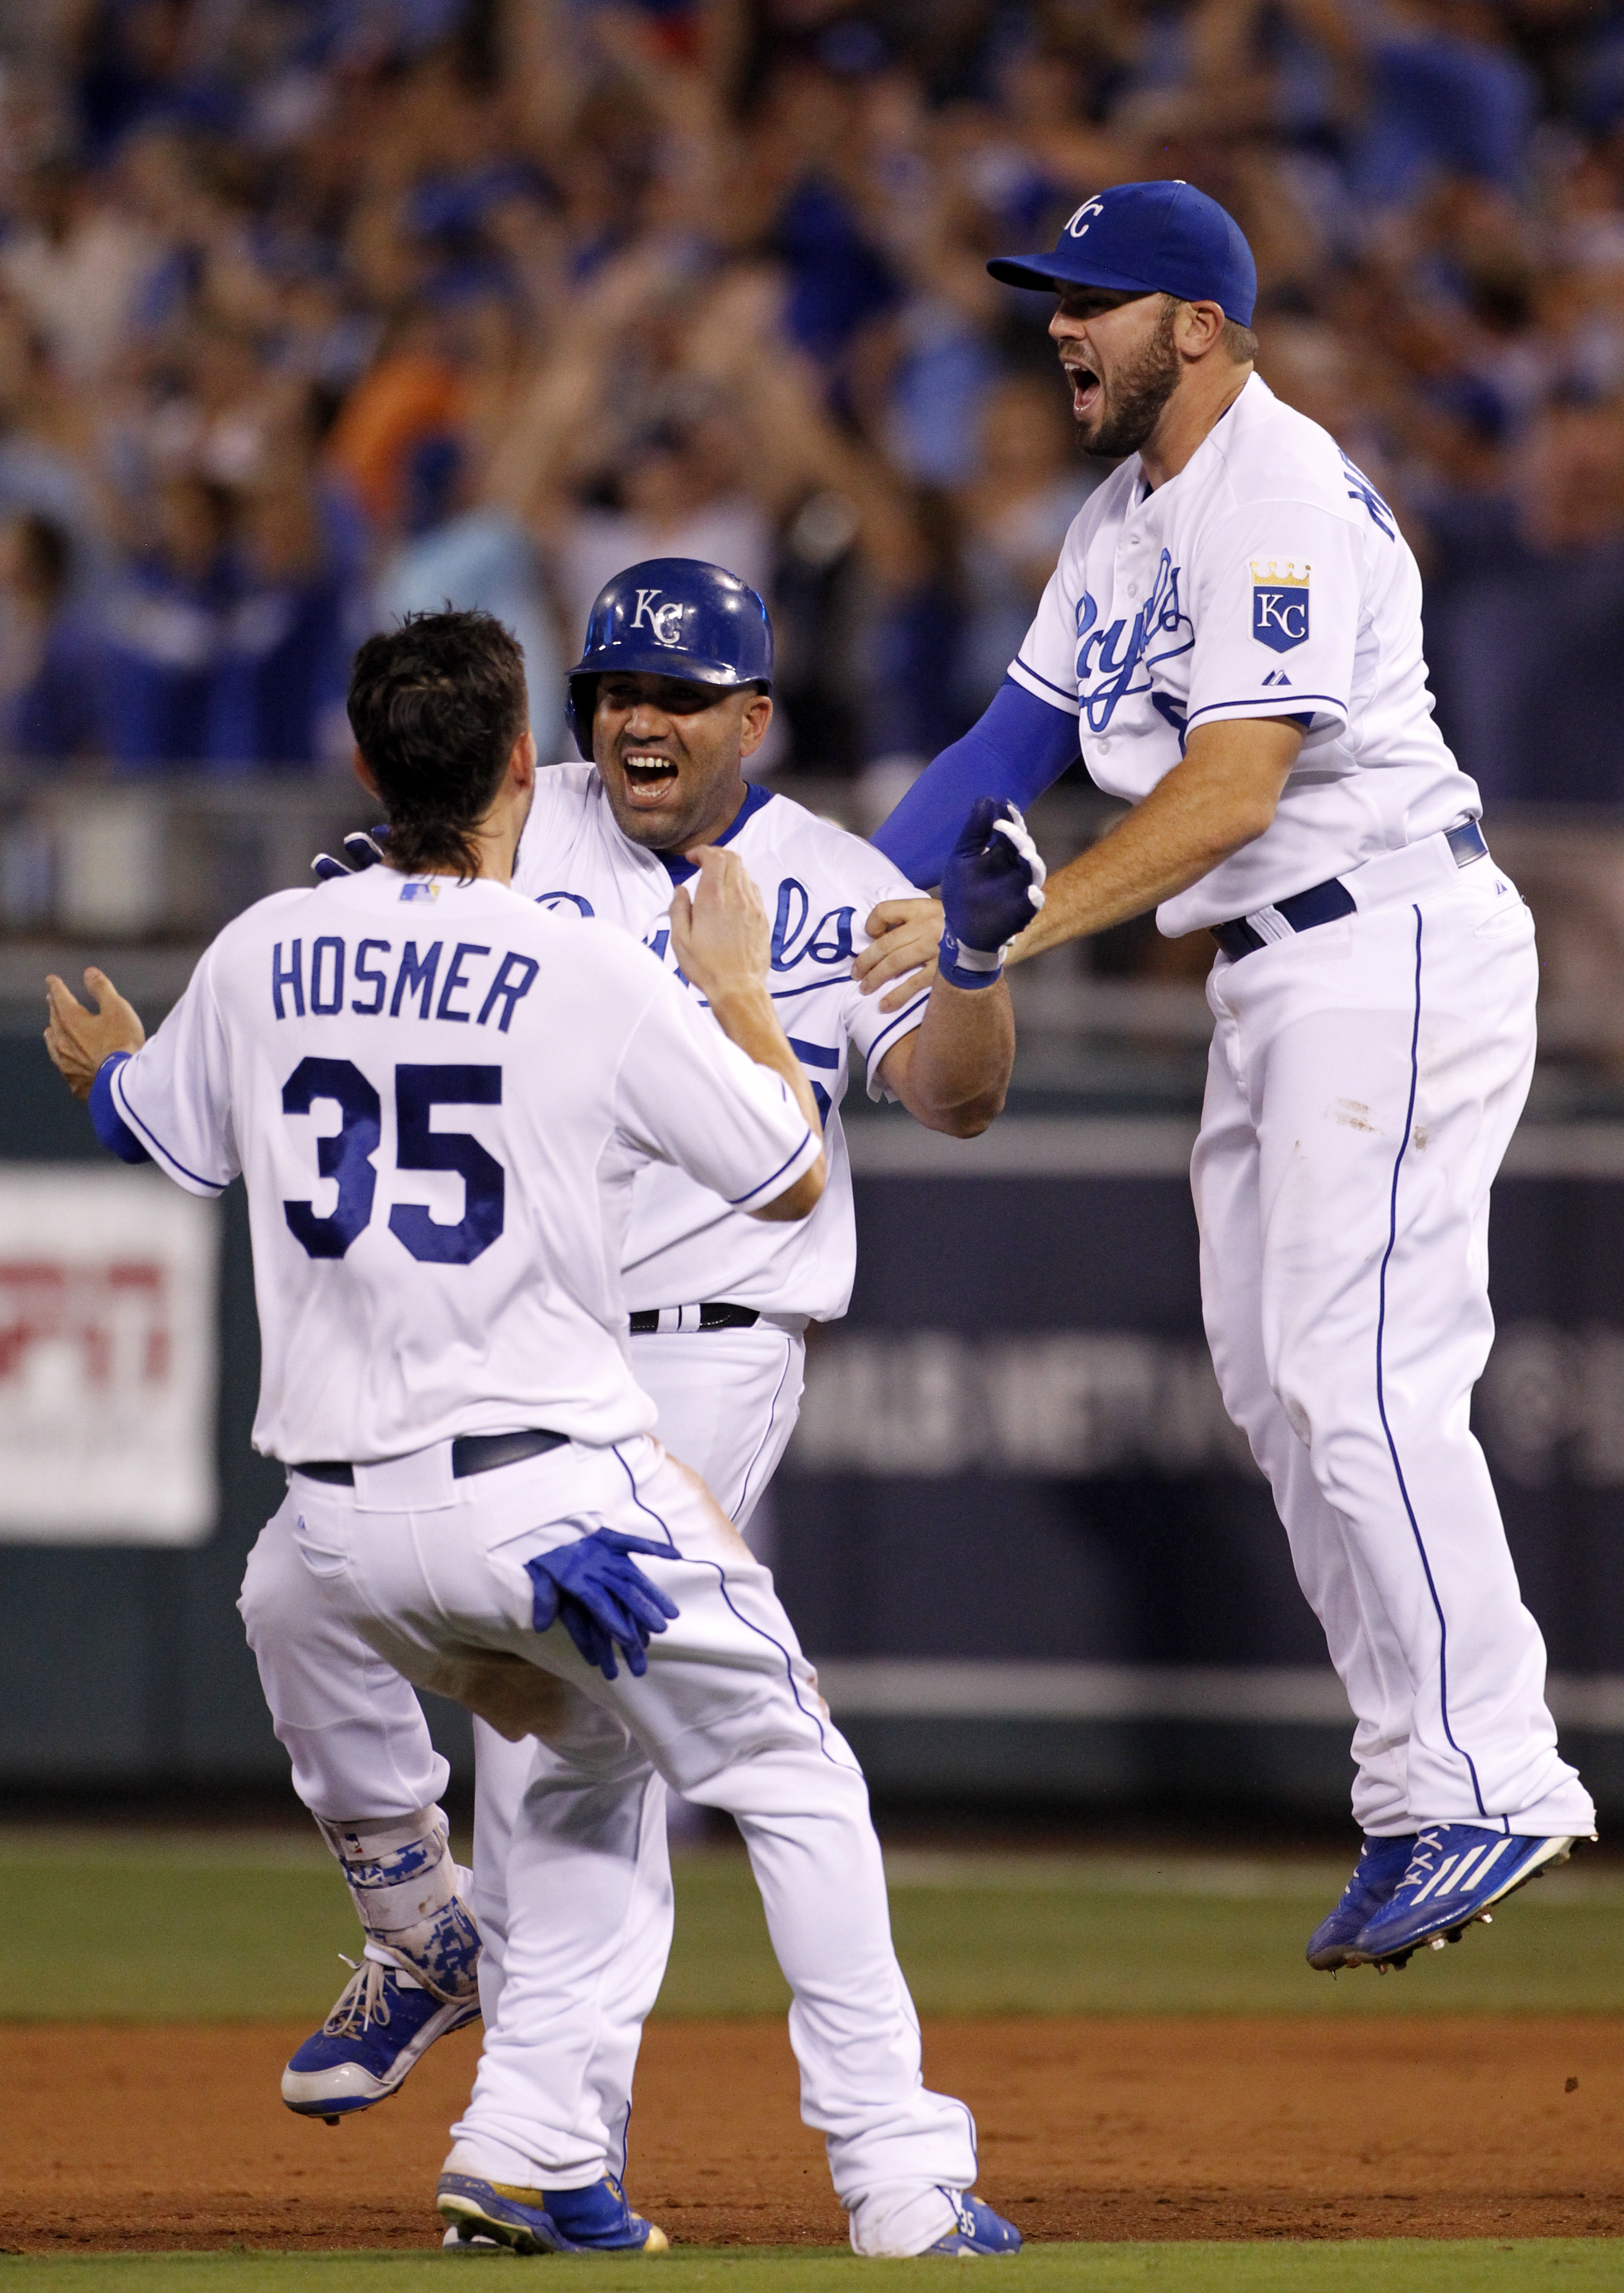 Kansas City Royals designated hitter Kendrys Morales, center, celebrates his game-winning hit with Eric Hosmer, left, and Mike Moustakas, right, in the 10th inning of a baseball game against the Los Angeles Angels at Kauffman Stadium in Kansas City, Mo.,